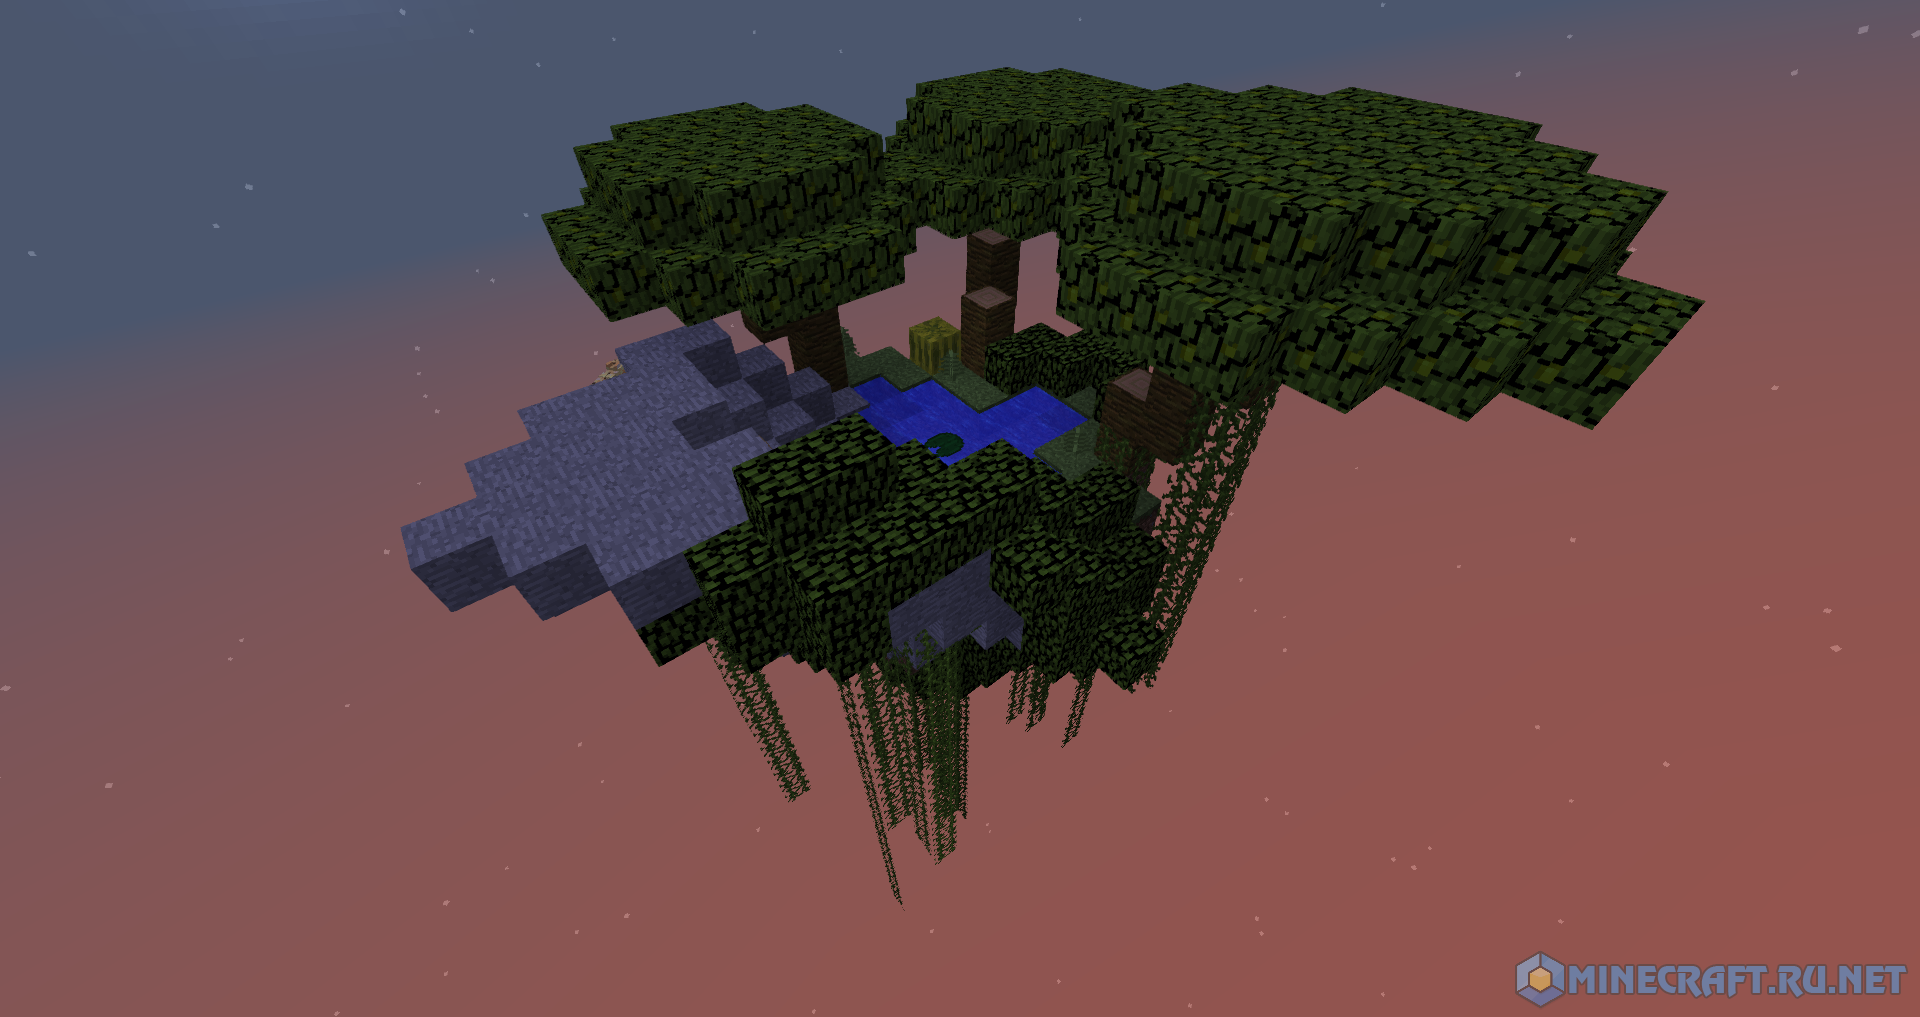 Skyblock: Nine Islands [1 11 2] › Maps › MC-PC NET — Minecraft Downloads